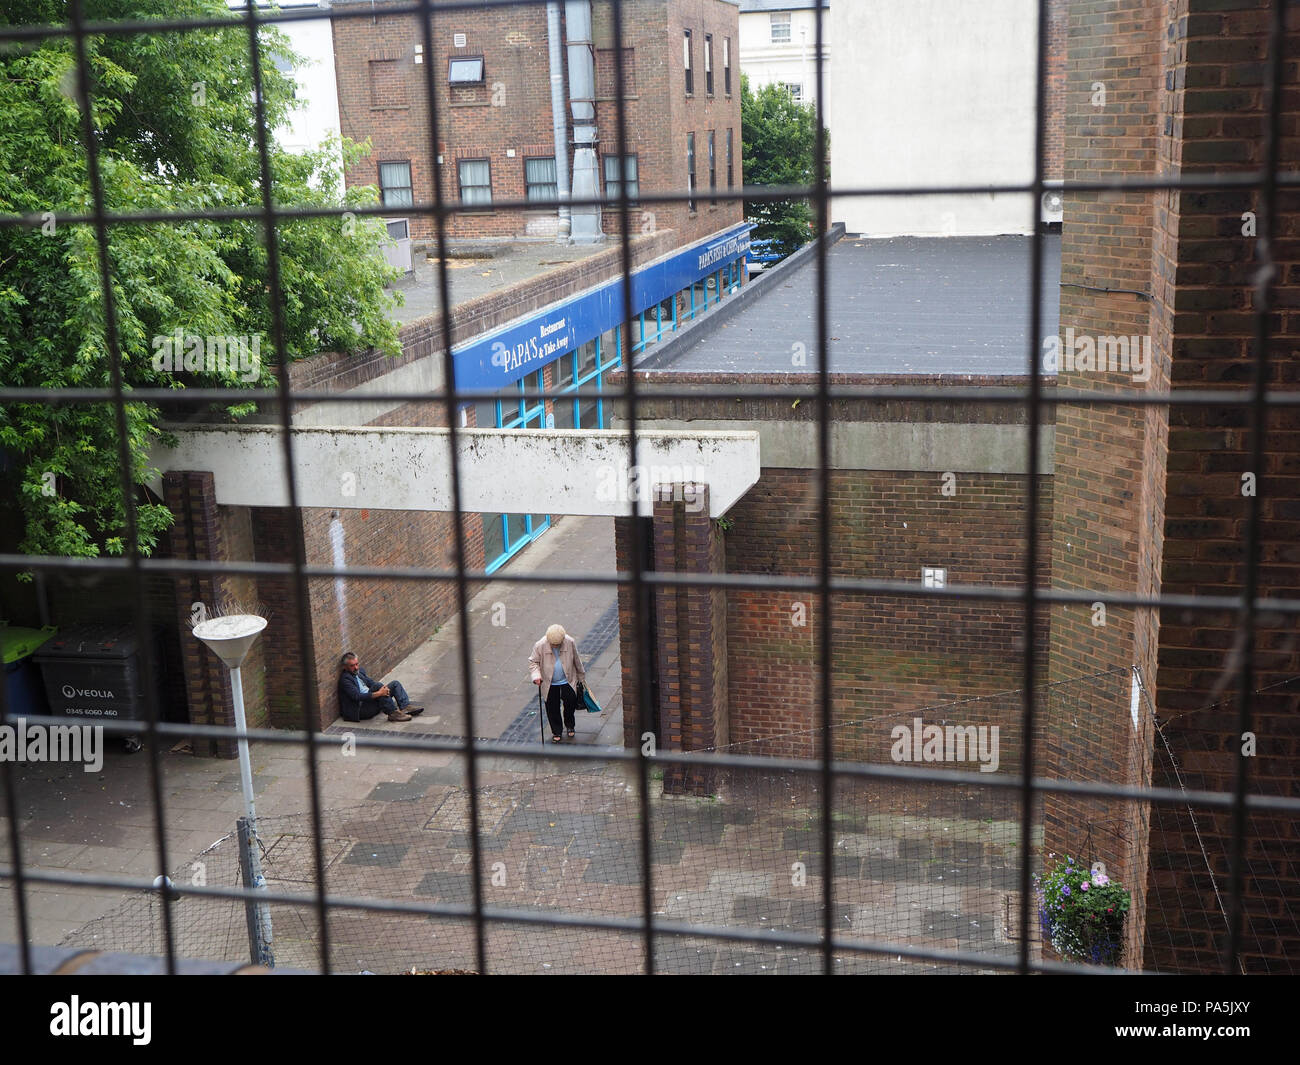 Homeless person sitting in walkway begging - Stock Image